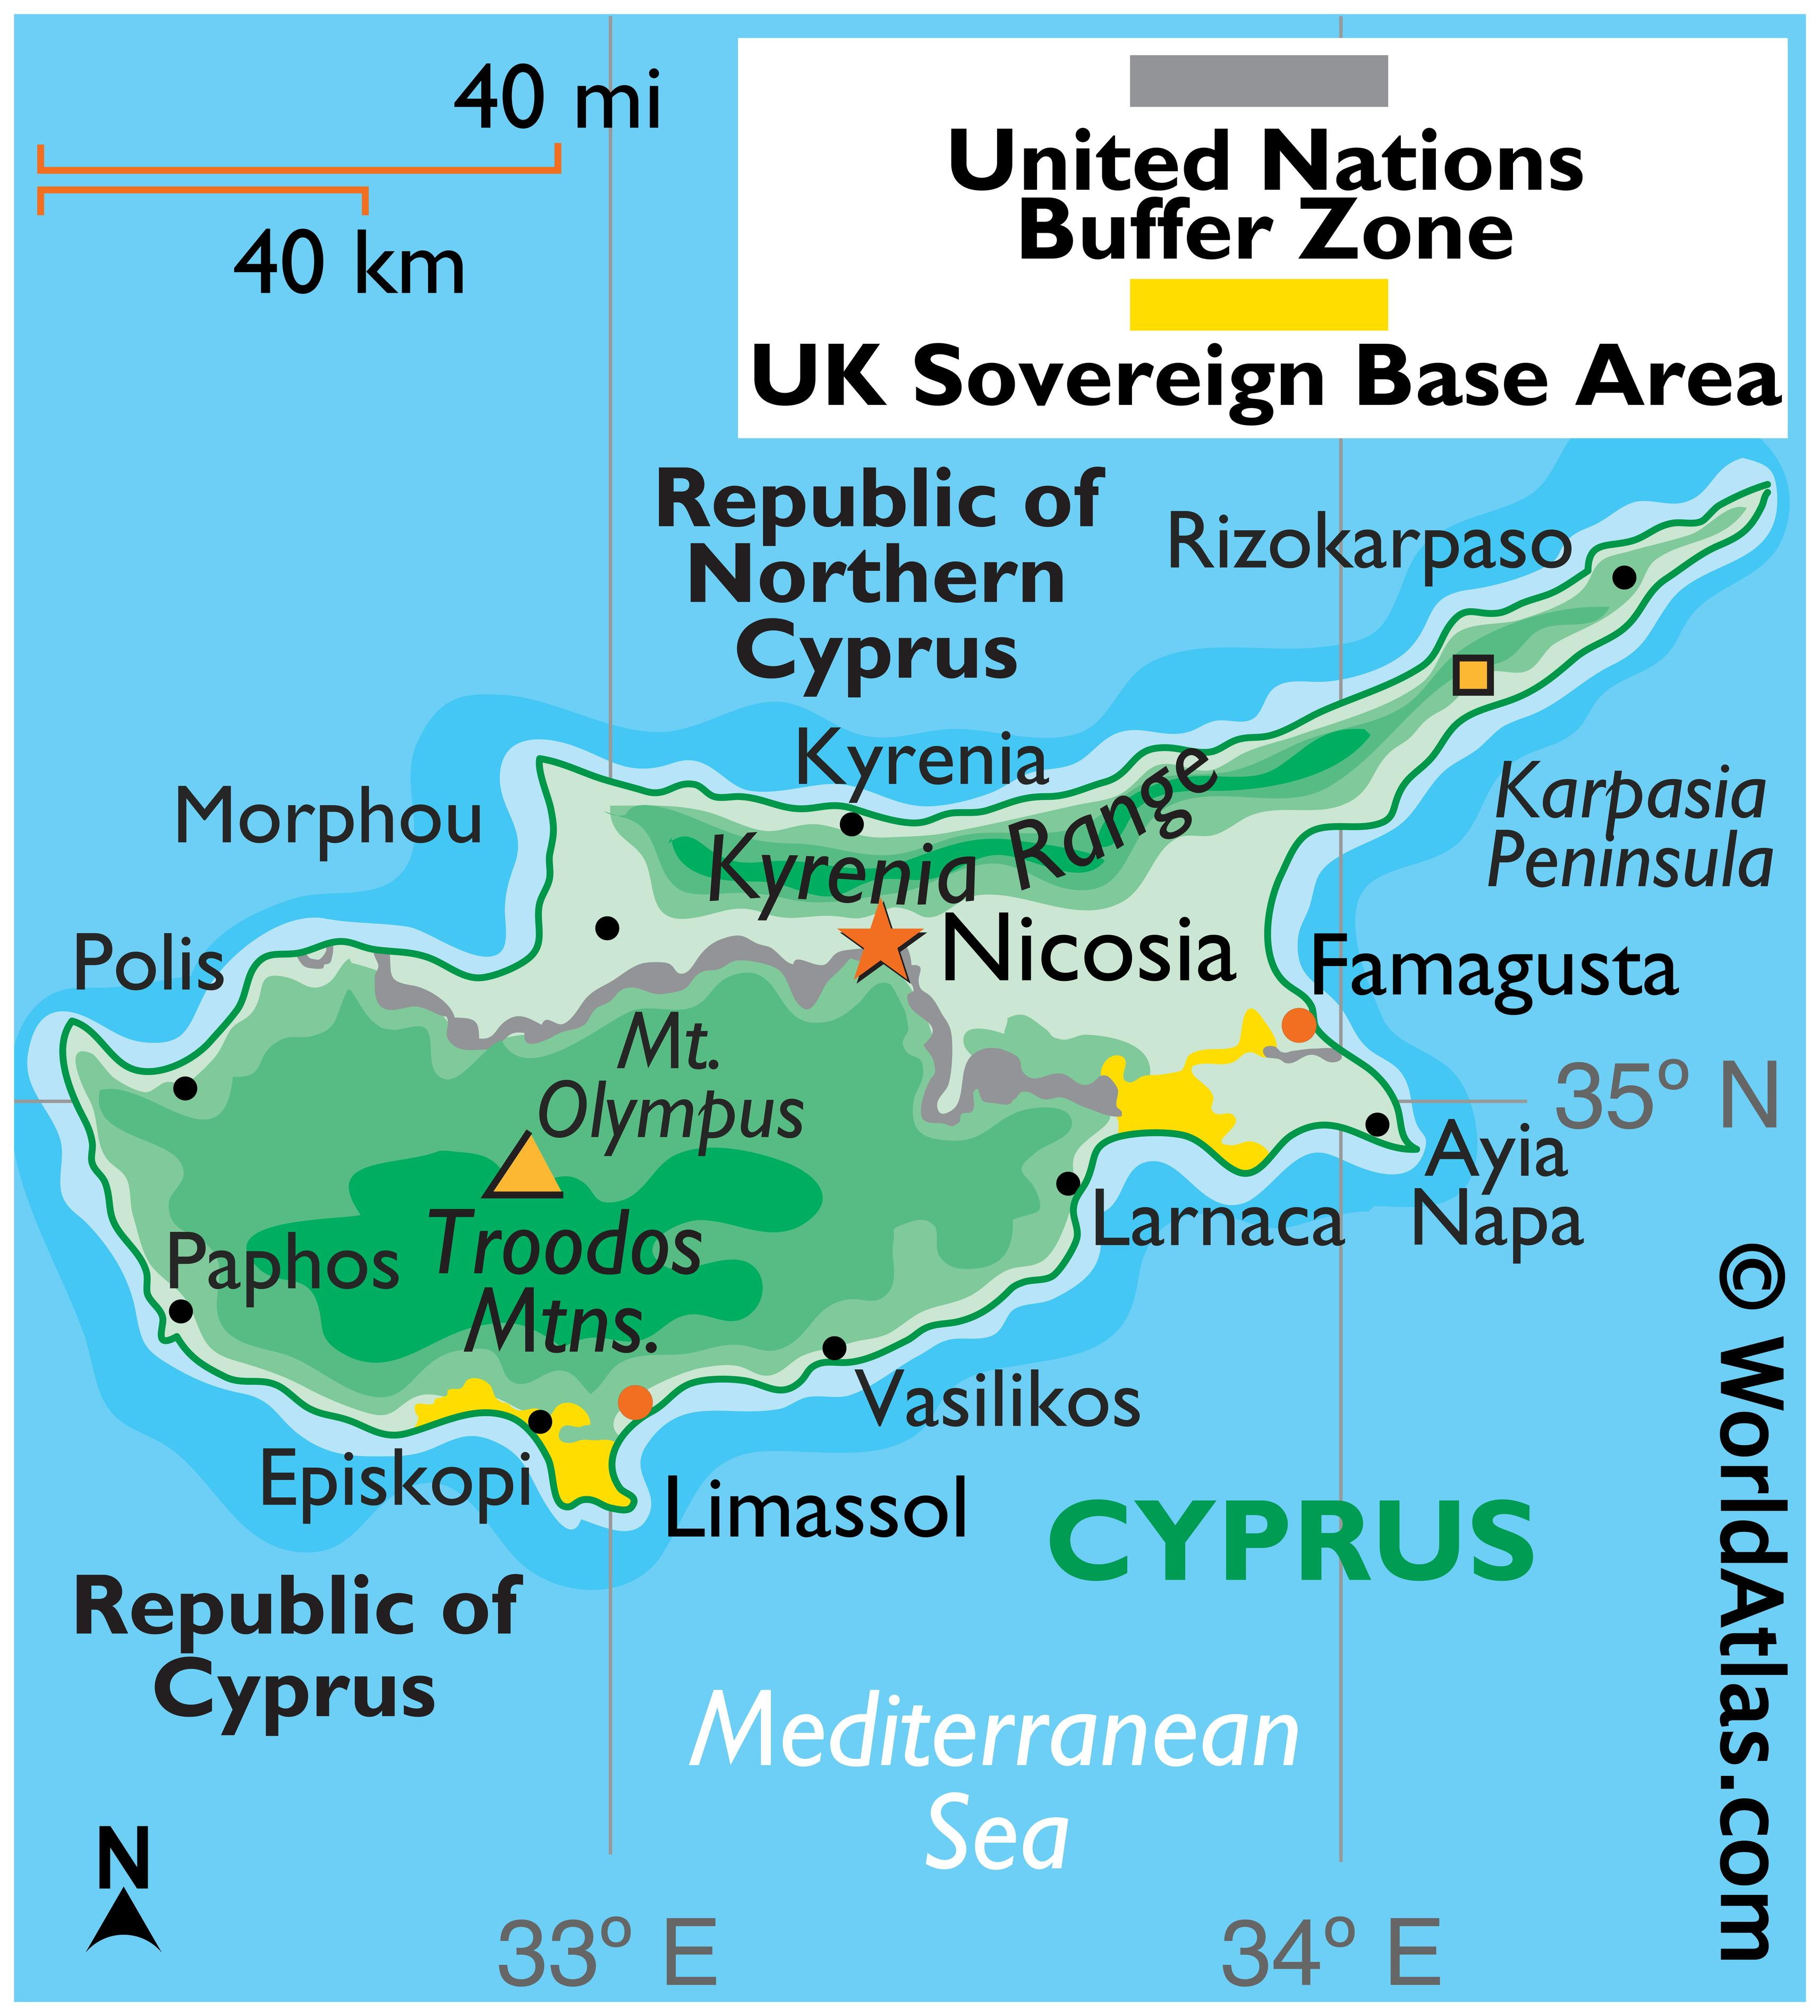 Physical Map of Cyprus showing relief, highest point, major mountain ranges, important urban centres, etc.